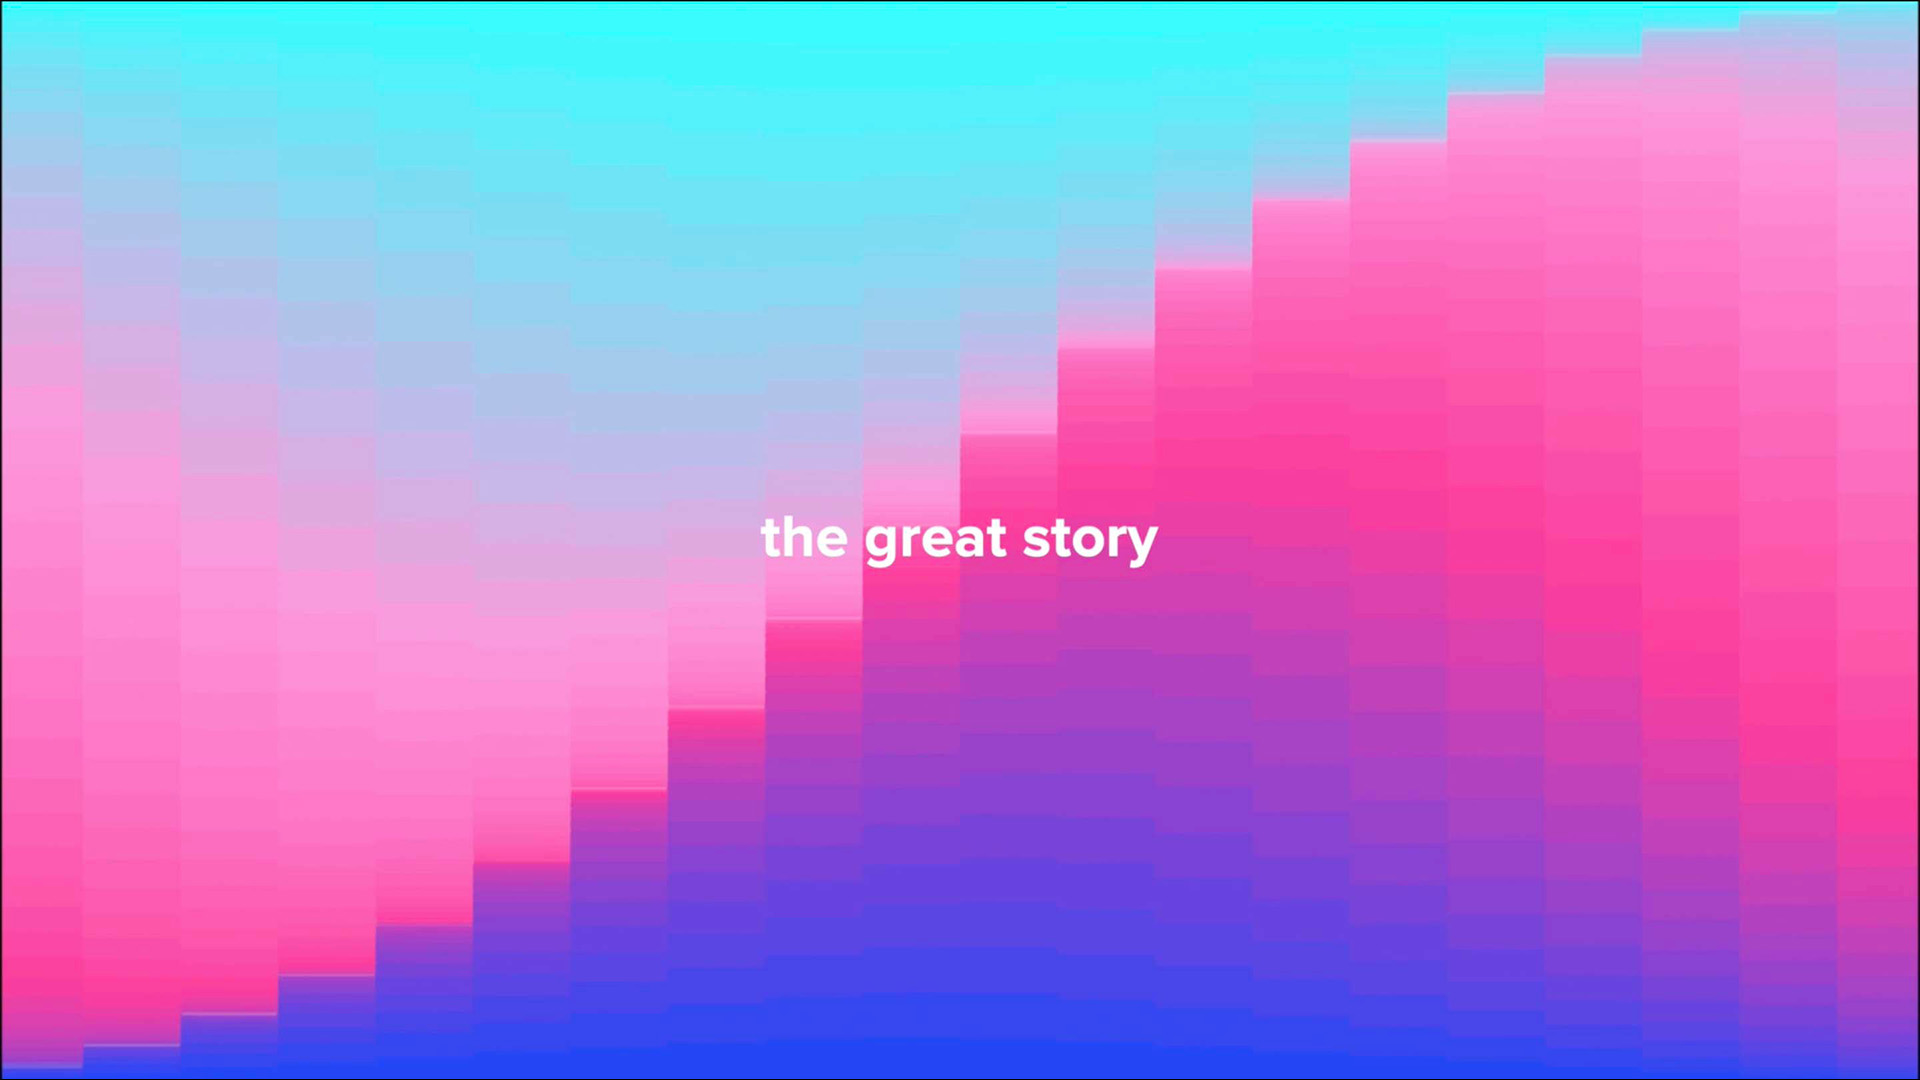 Series: The Great Story